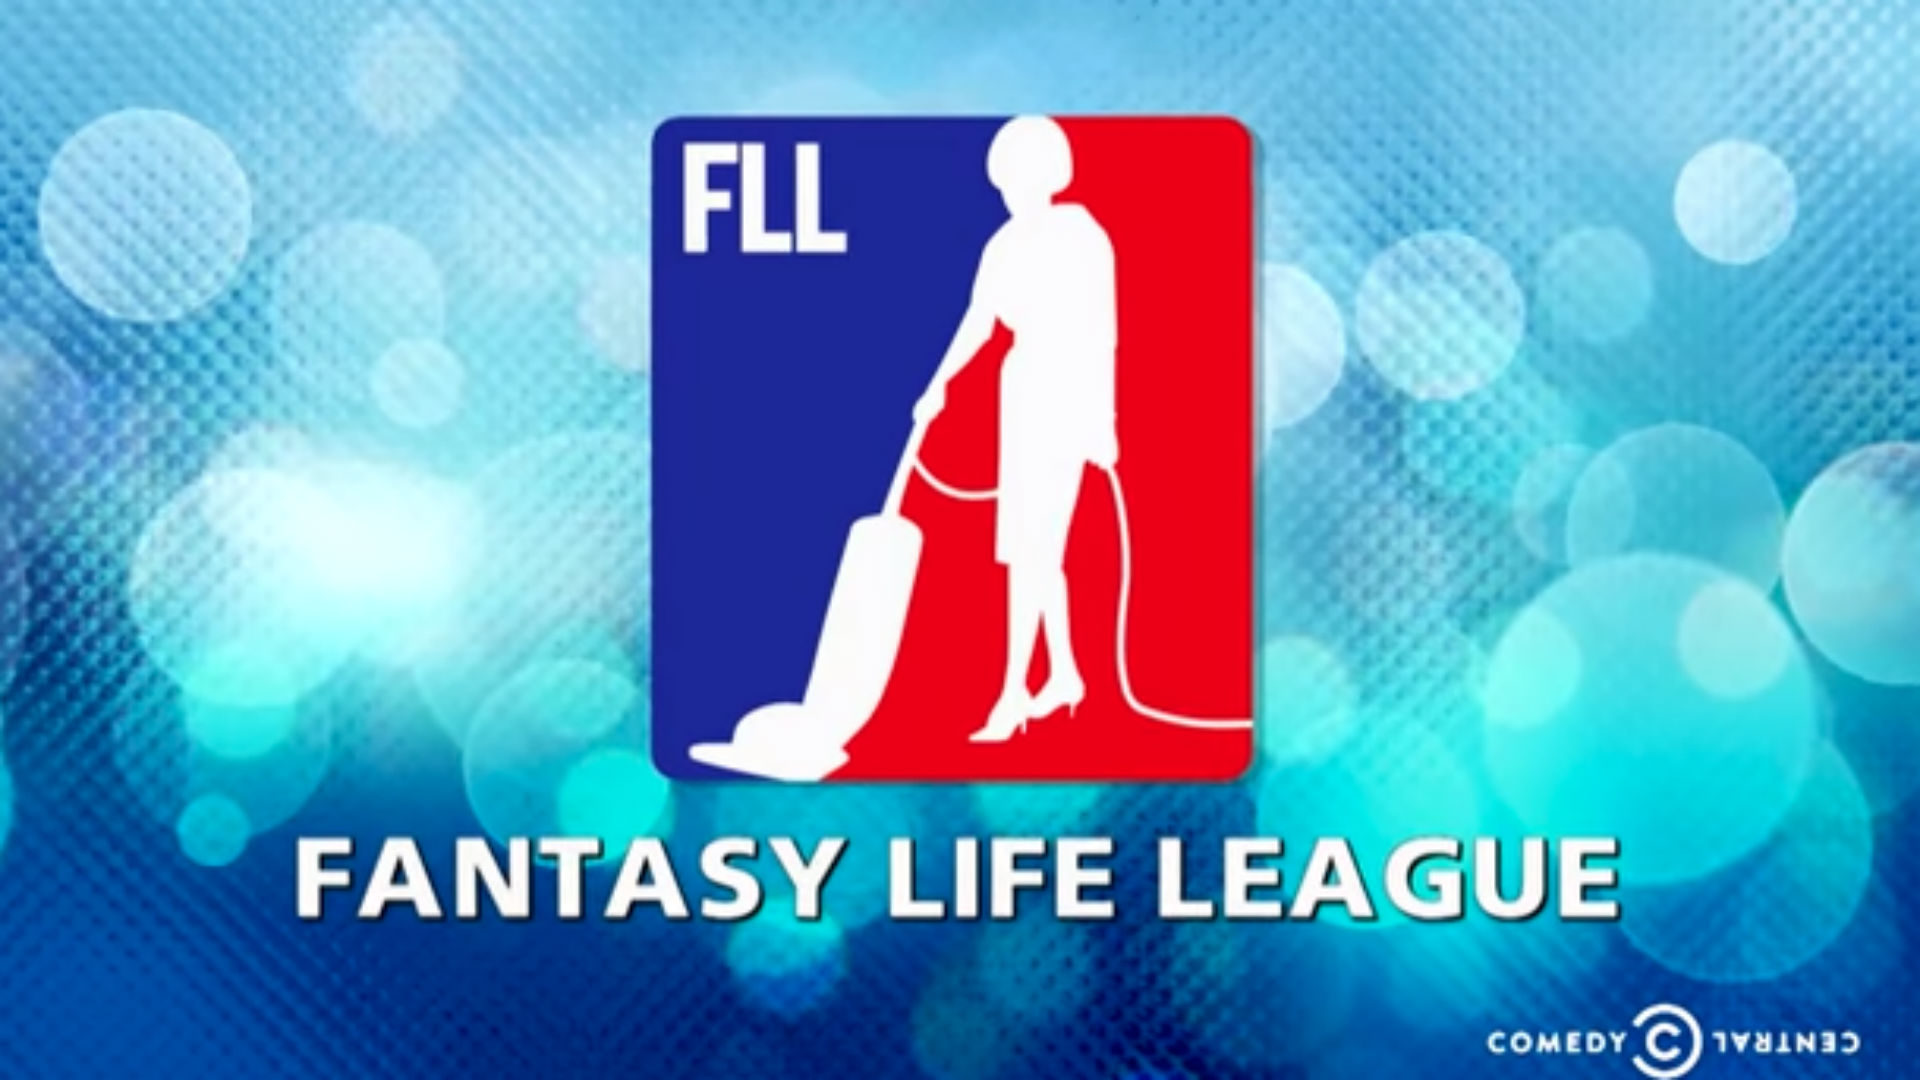 Hannibal Burress Fantasy Life League-FTR-.jpg